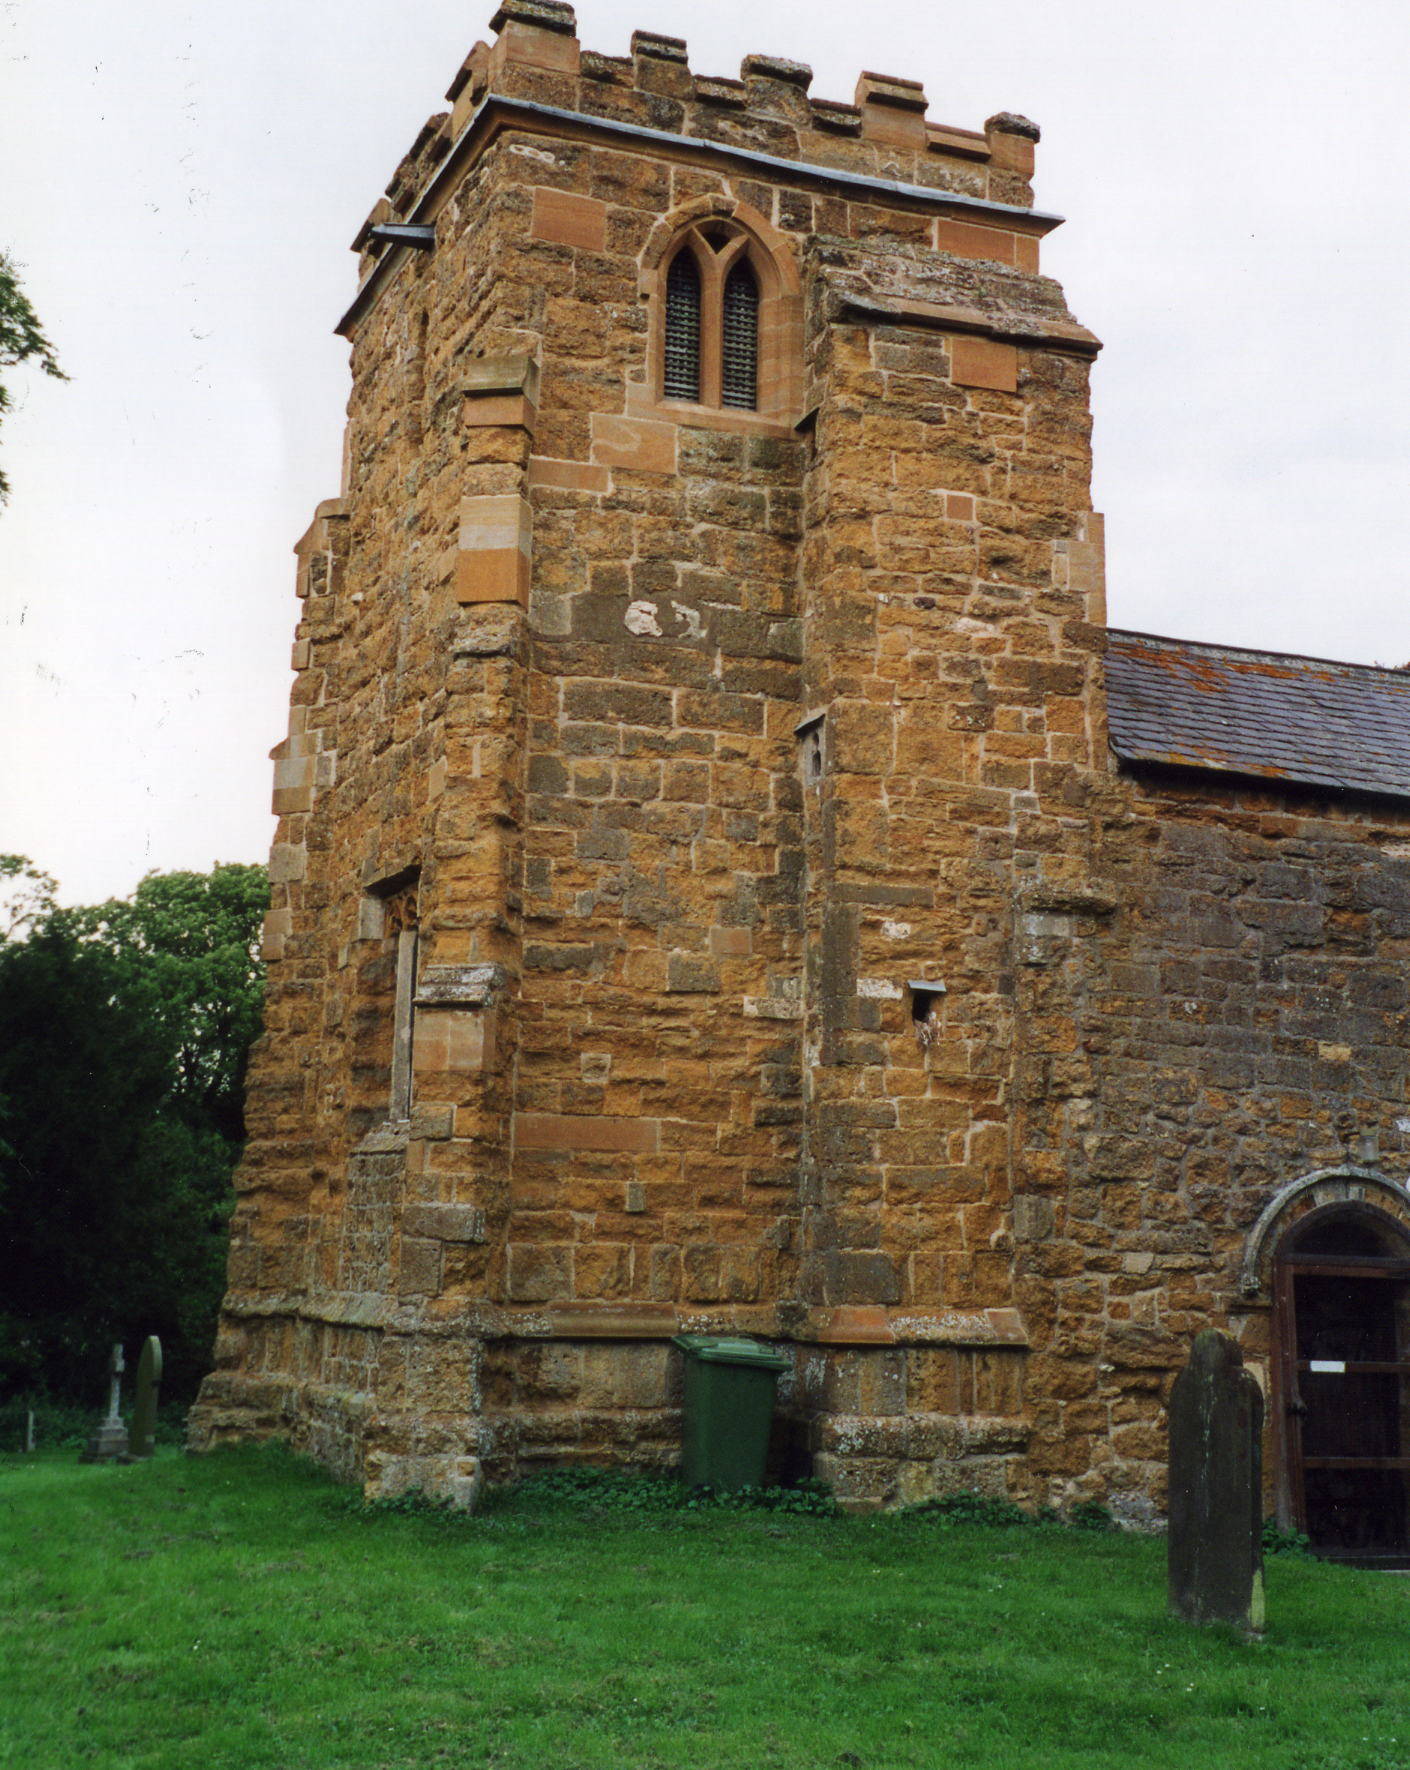 Saint Mary's tower